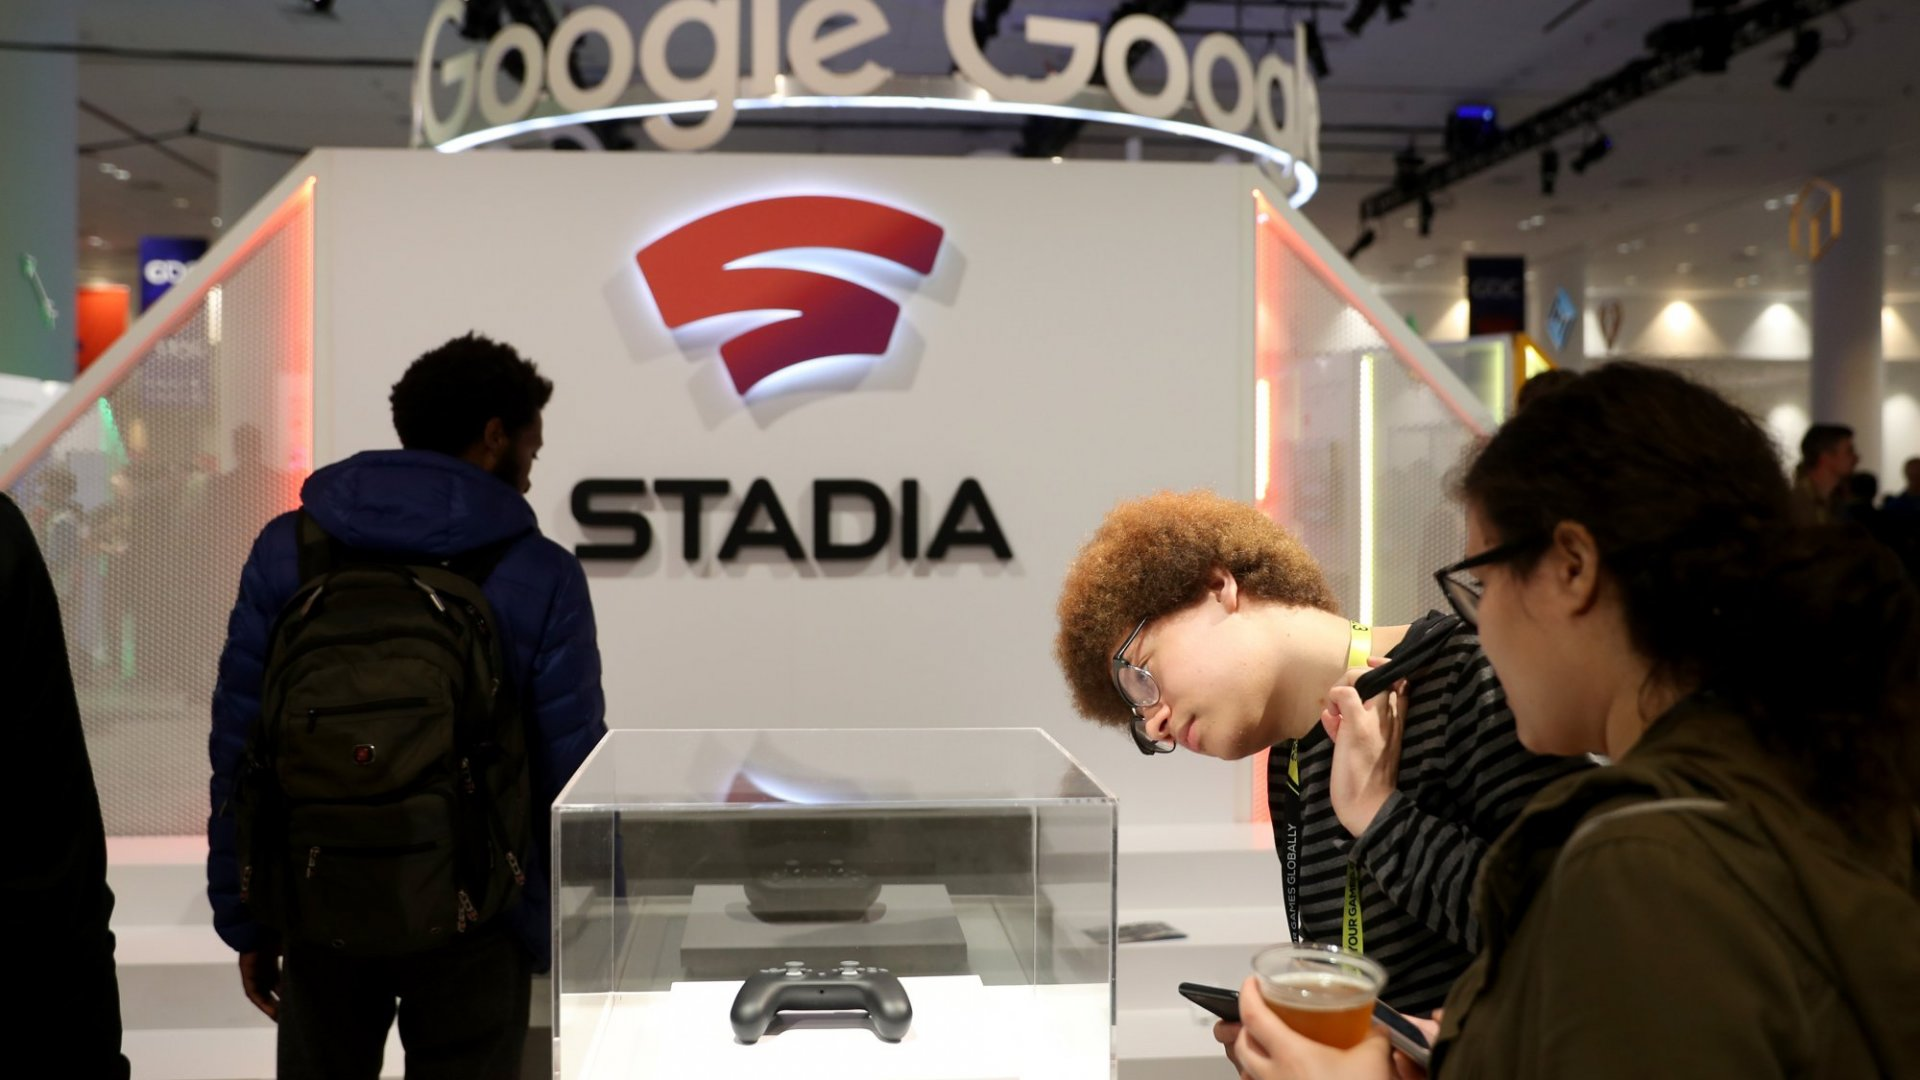 Google Stadia Could Be a Costly Console Alternative. Here's What You Should Know About How It Plans to Make Money